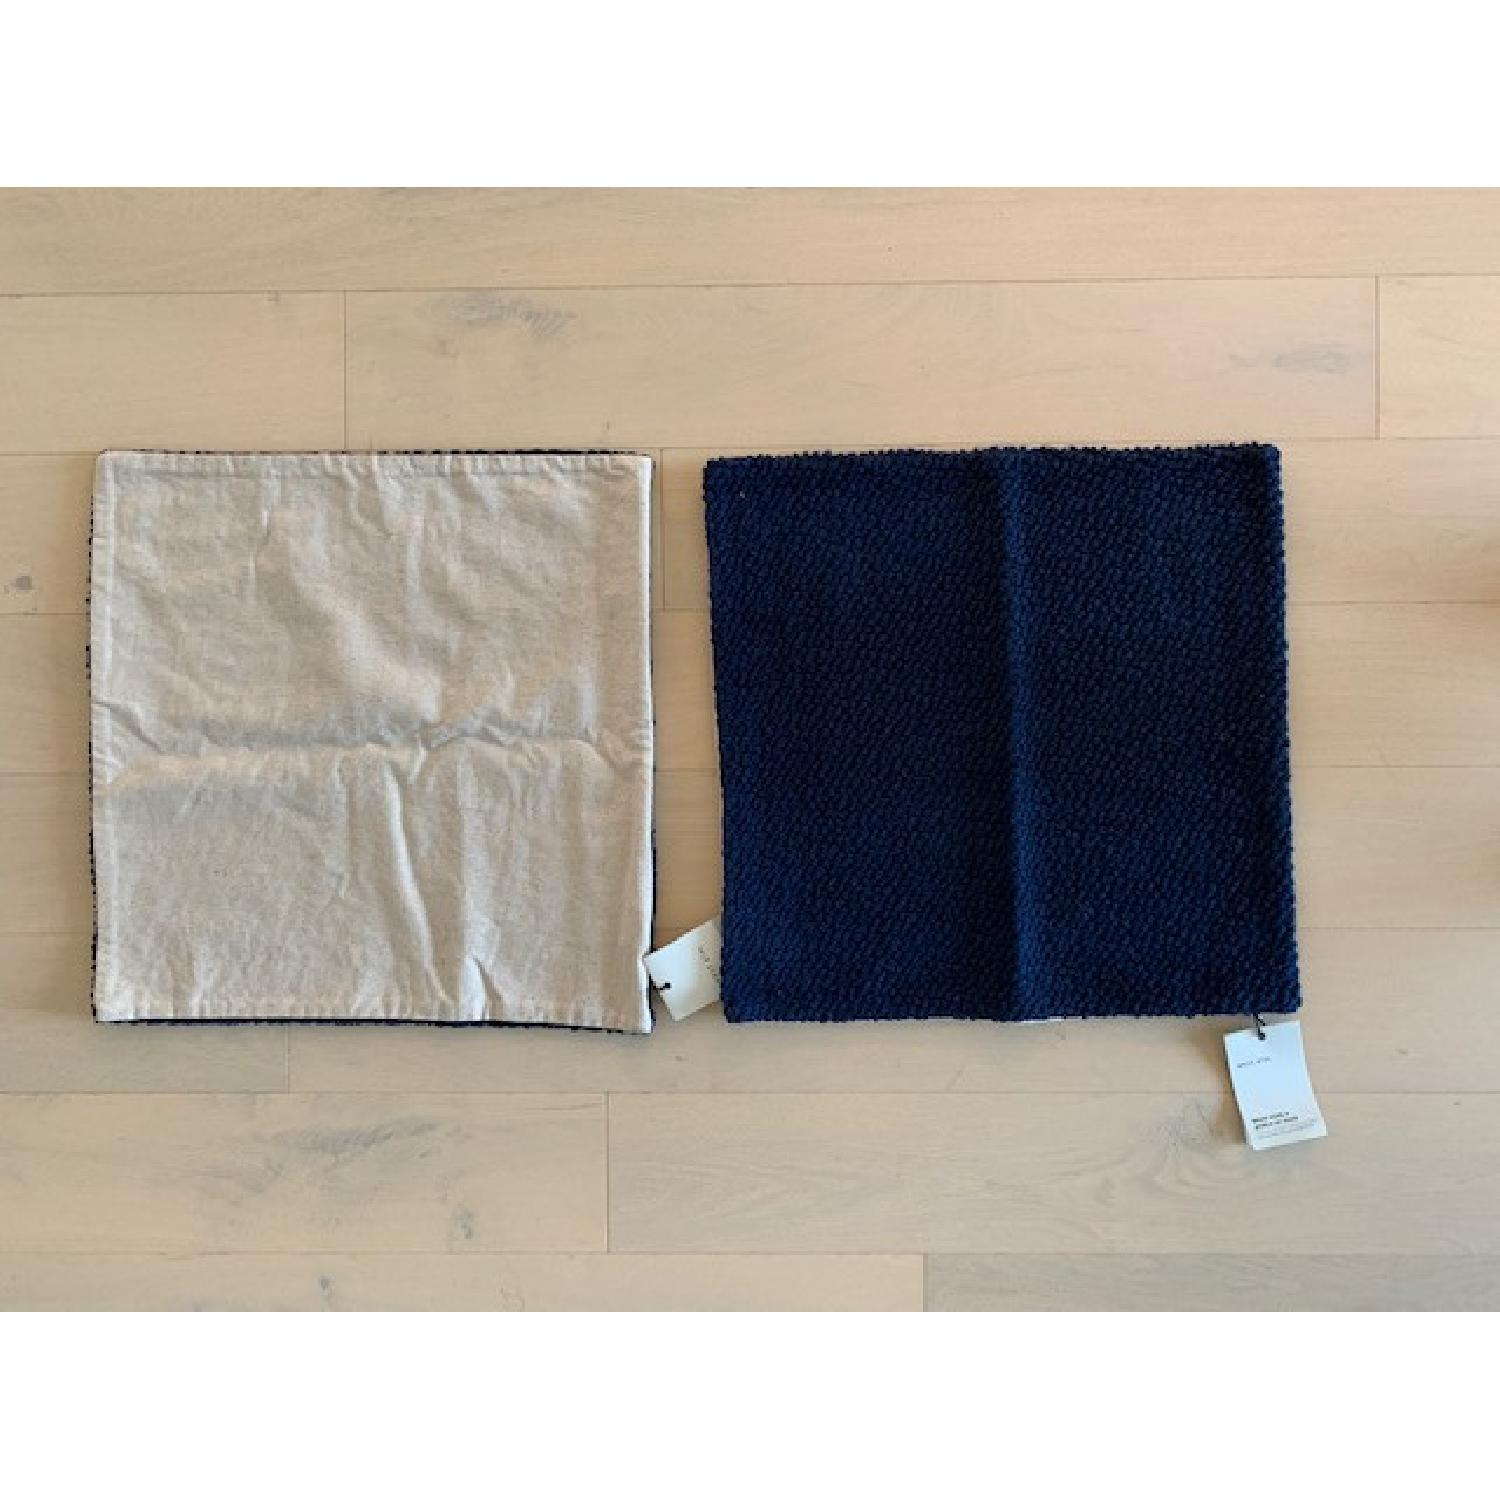 West Elm Boucle Navy Pillow Covers - image-3